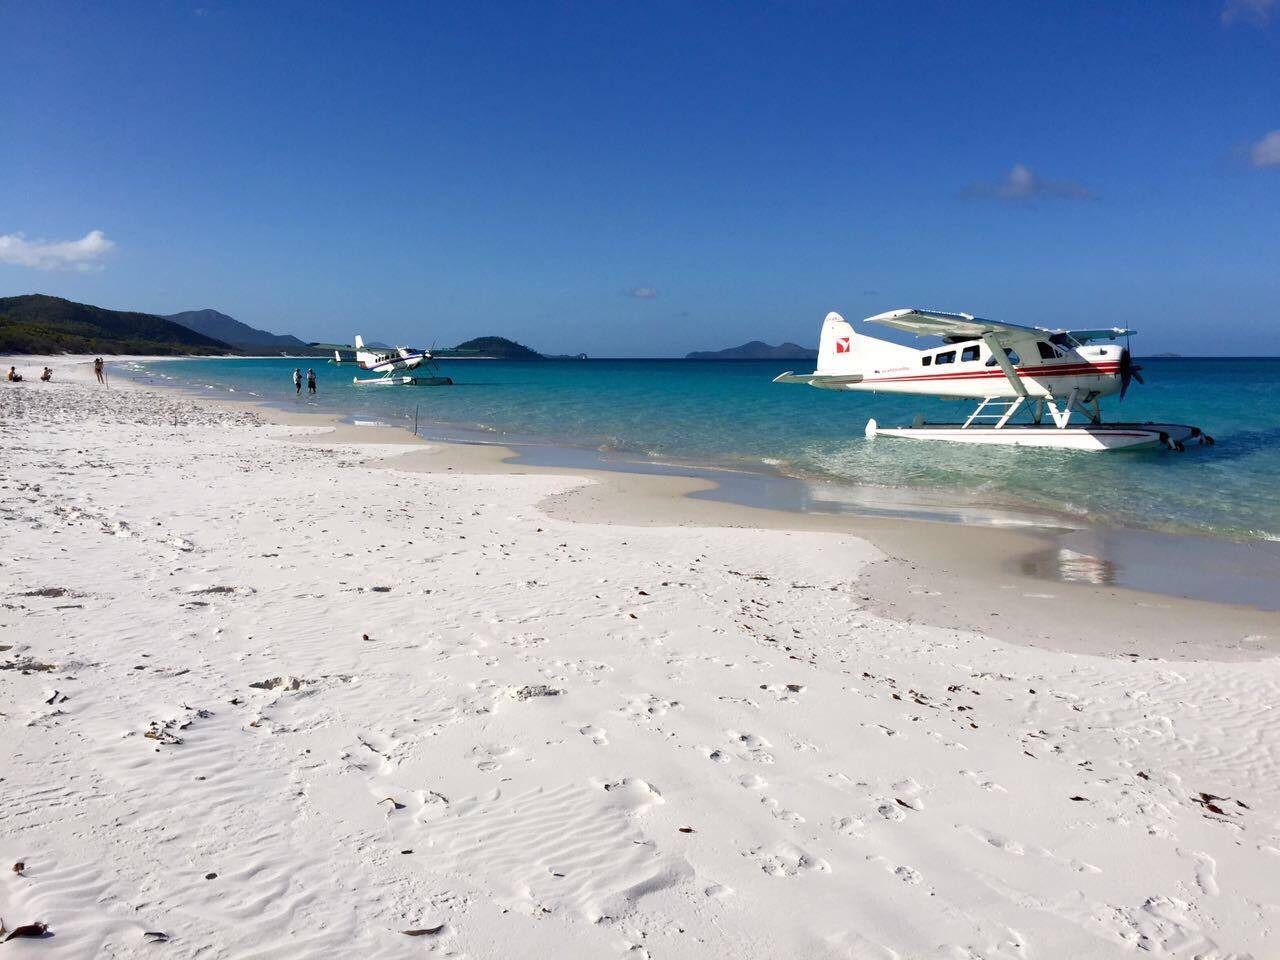 Seaplanes leaving and pick-up content guests. There's a real temptation to hide, and stay on till the next plane arrives. Make sure to get on the last one out, though, as there's likely no fresh water on the island.